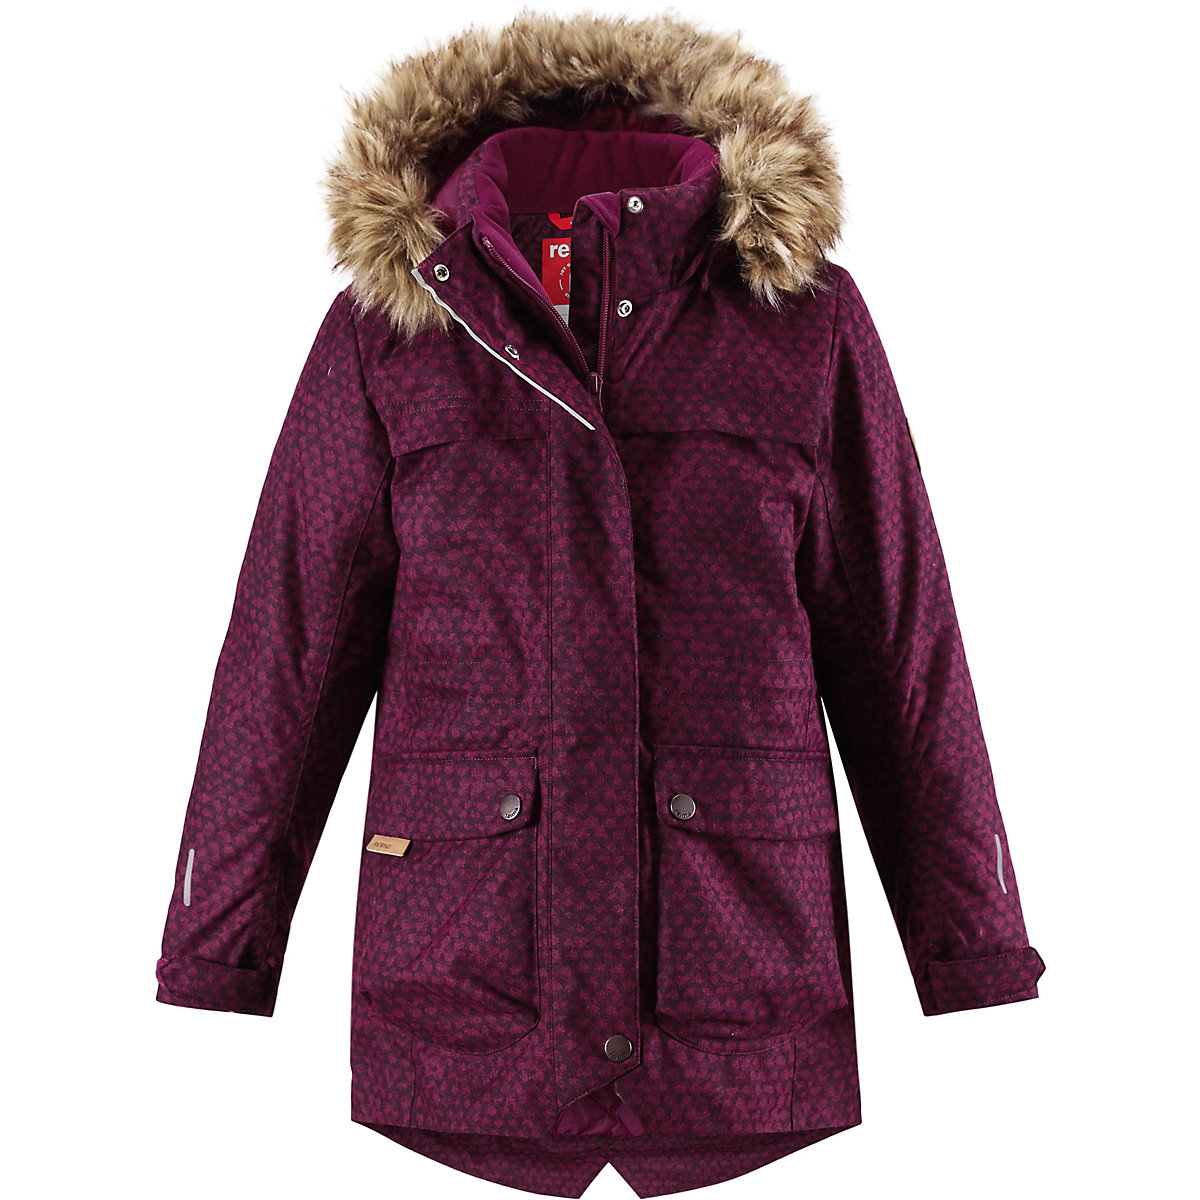 REIMA Jackets 8665446 for girls polyester winter  fur clothes girl jackets